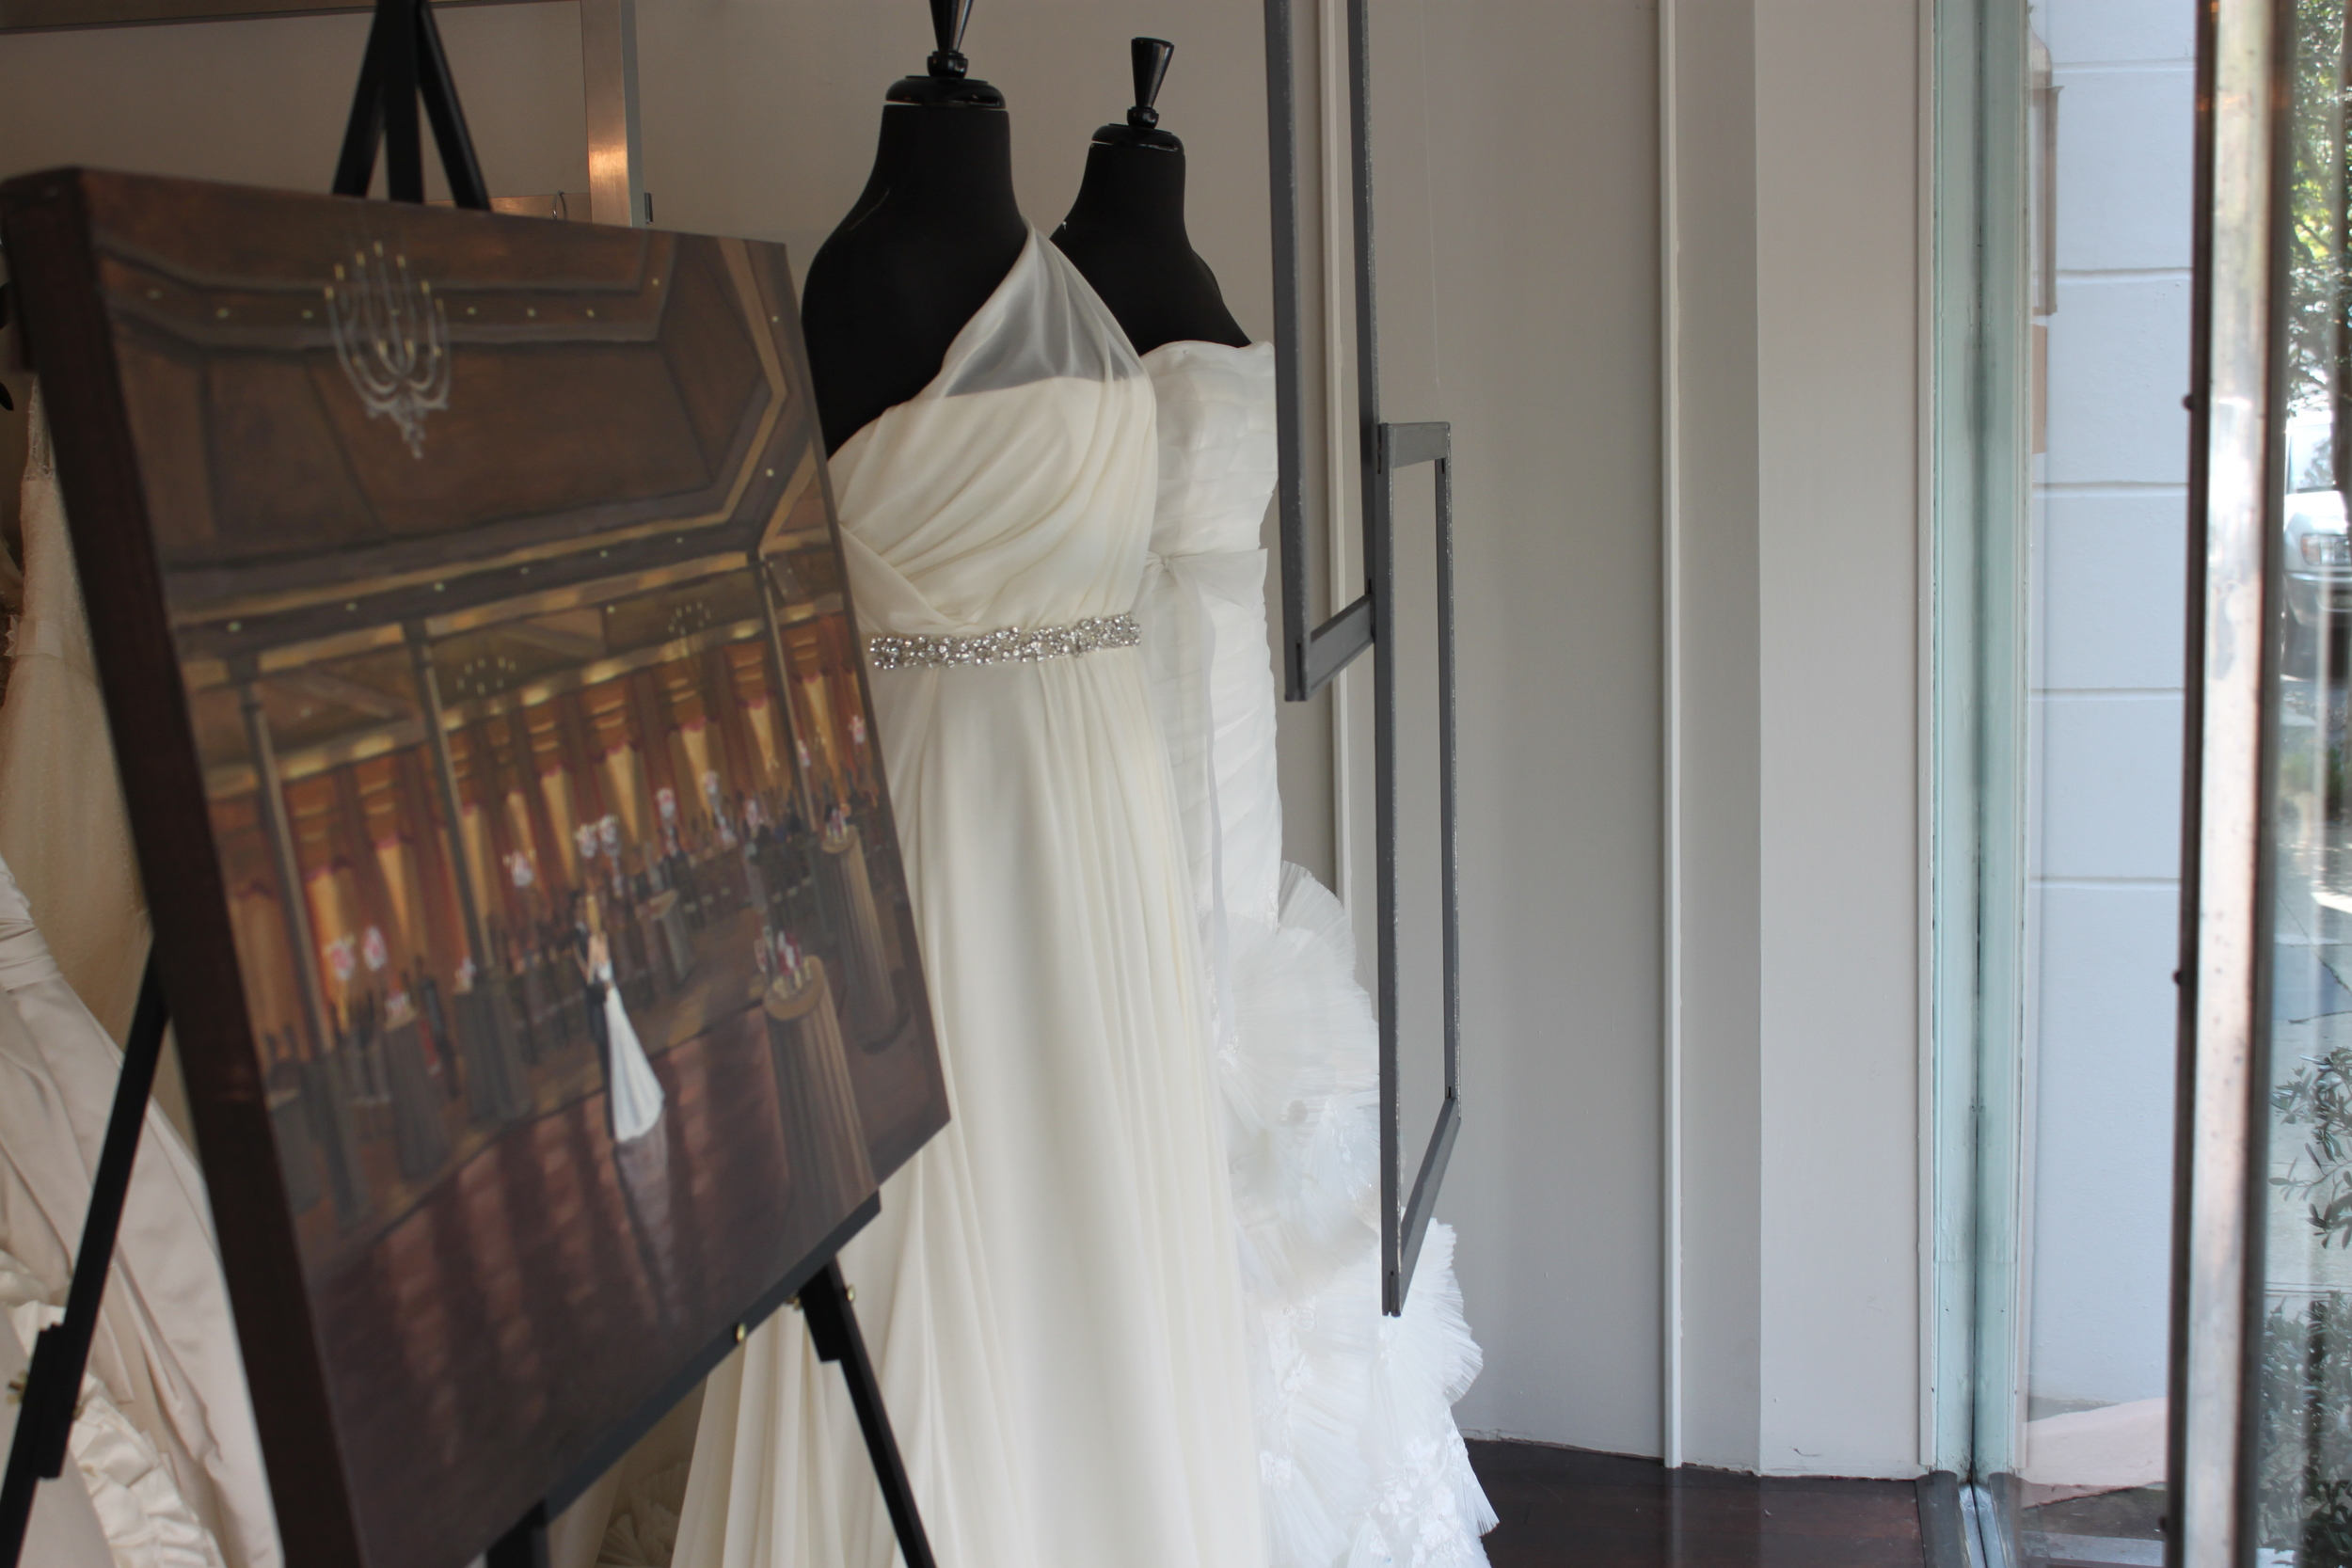 Wedding painting on display at Fabulous Frocks. Window display designed by Wed on Canvas.